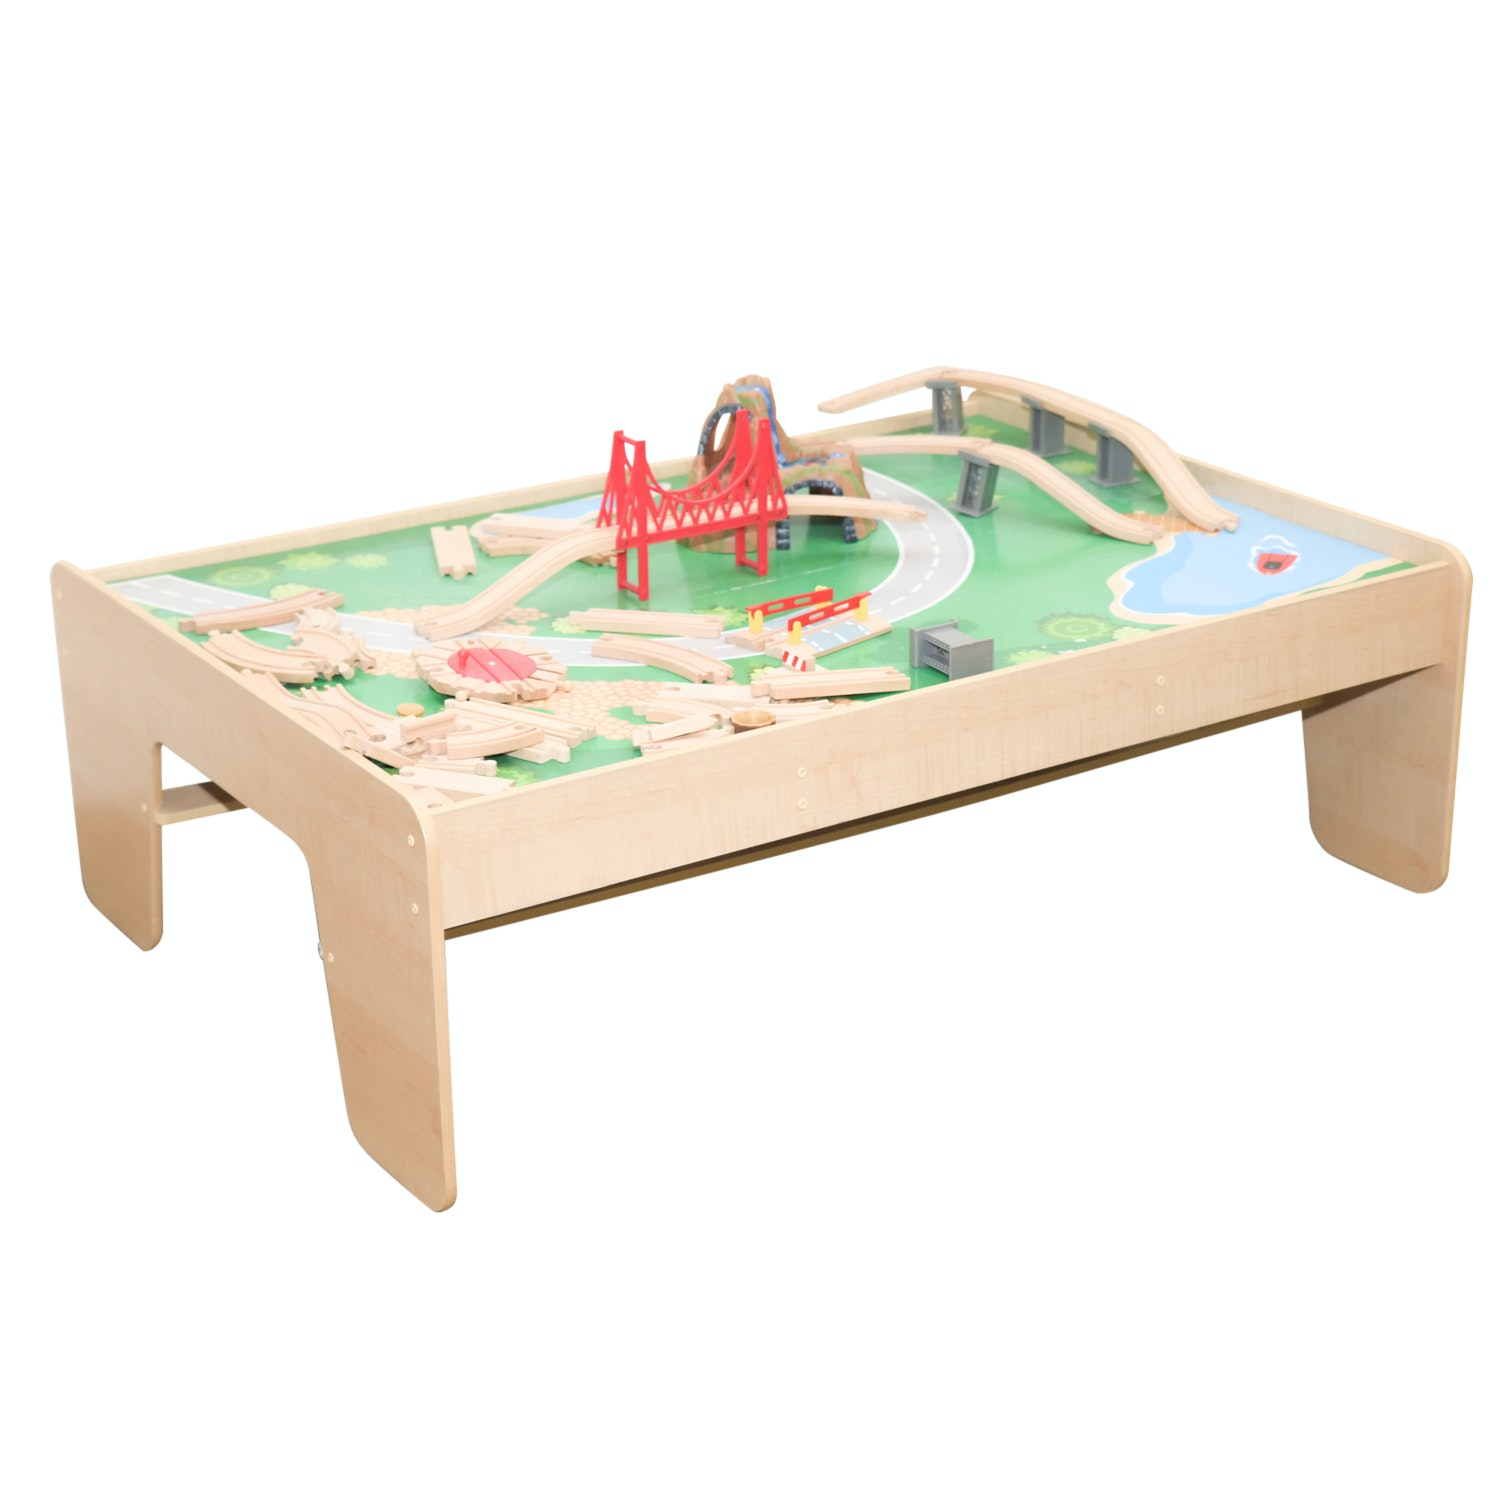 Waterfall Mountain Train Table by Kid Kraft with Play Pieces